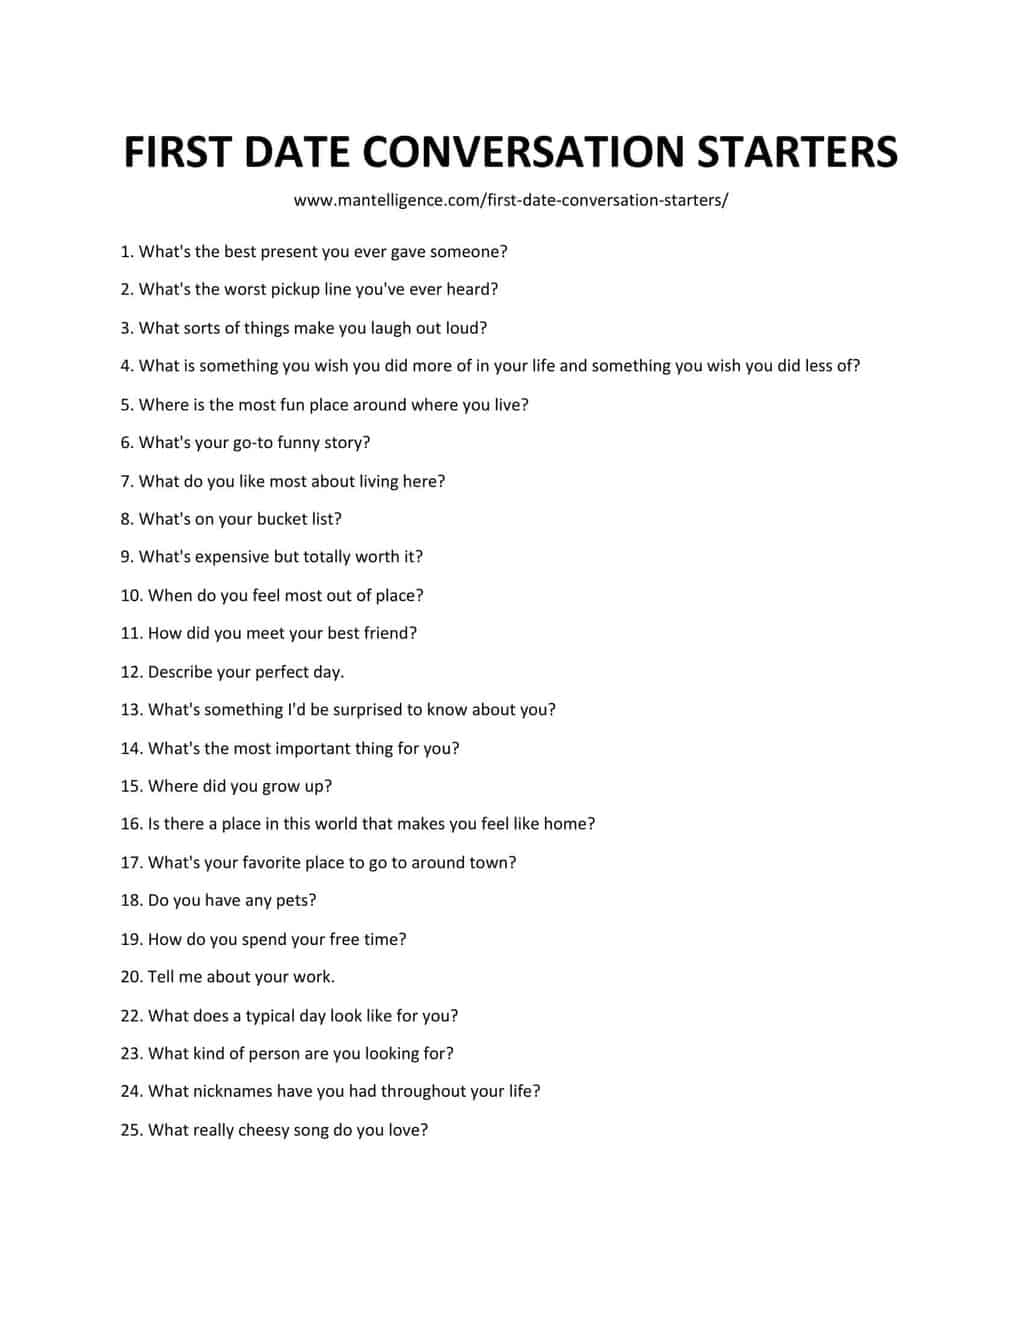 Downloadable and Printable List of First Date Conversation Starters as jpg/pdf